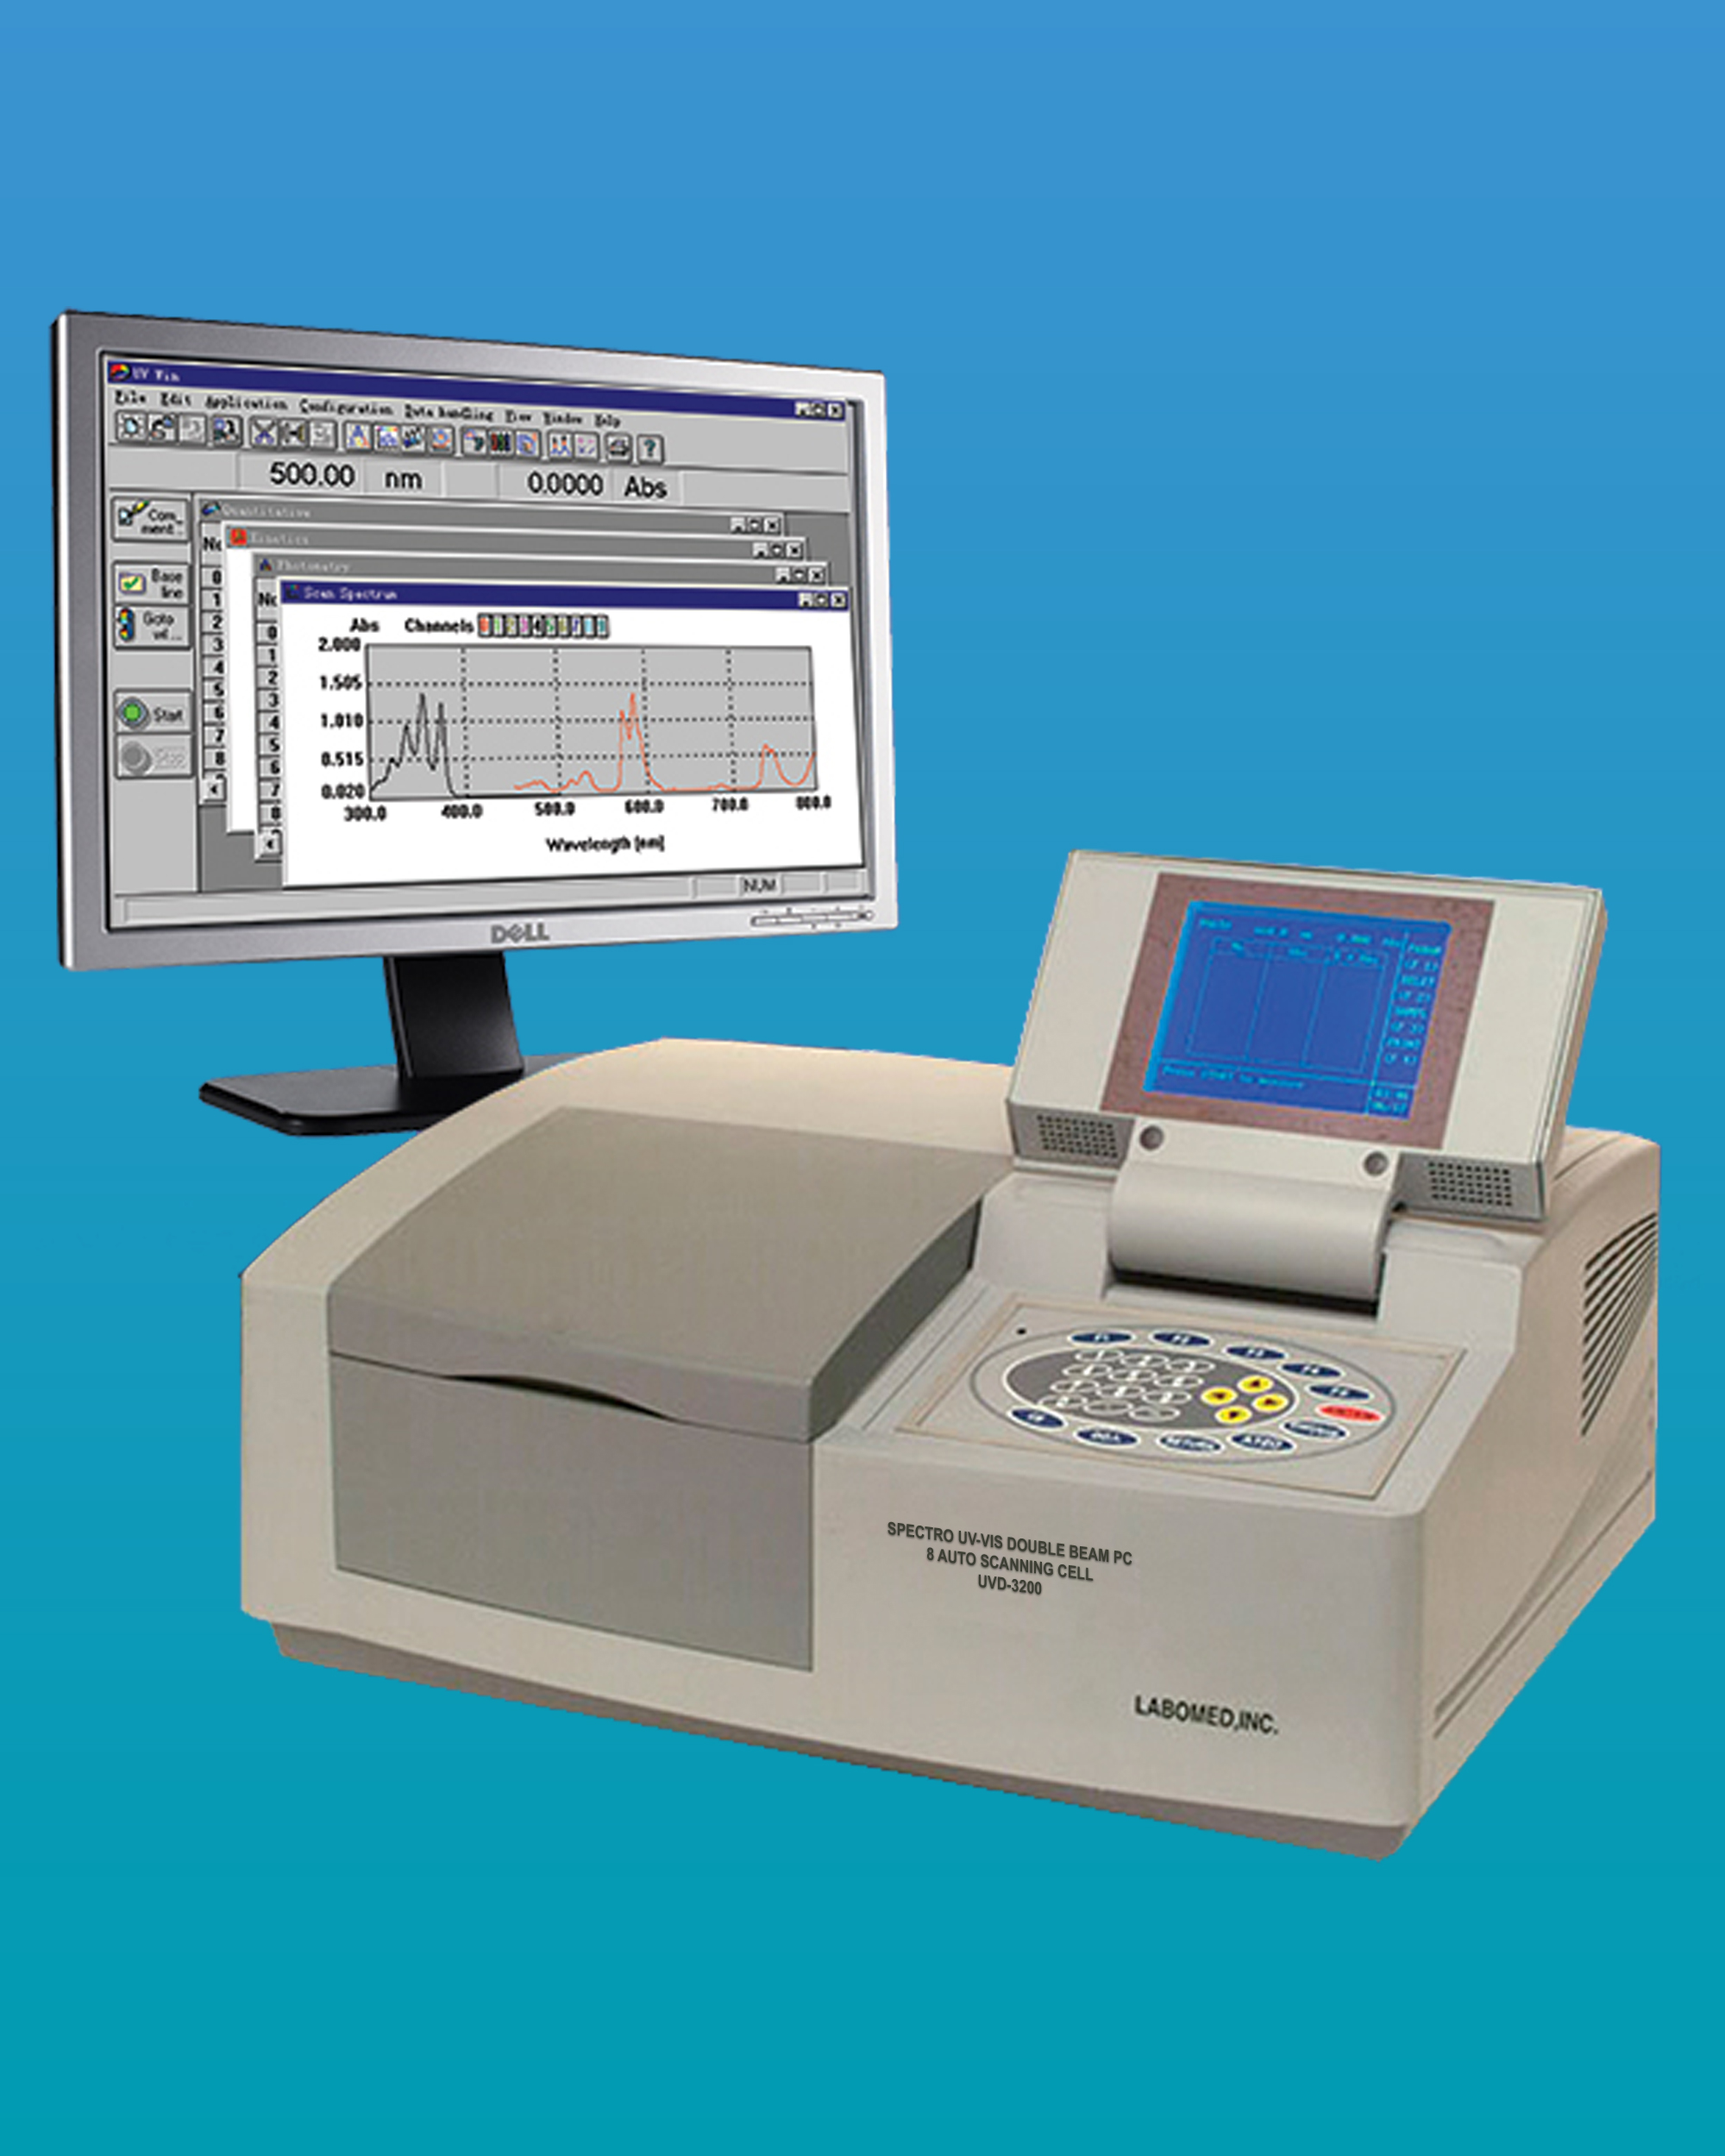 [UVD-3200] Spectro UV-VIS Double PC 8 Auto Cell Scanning Spectrophotometer